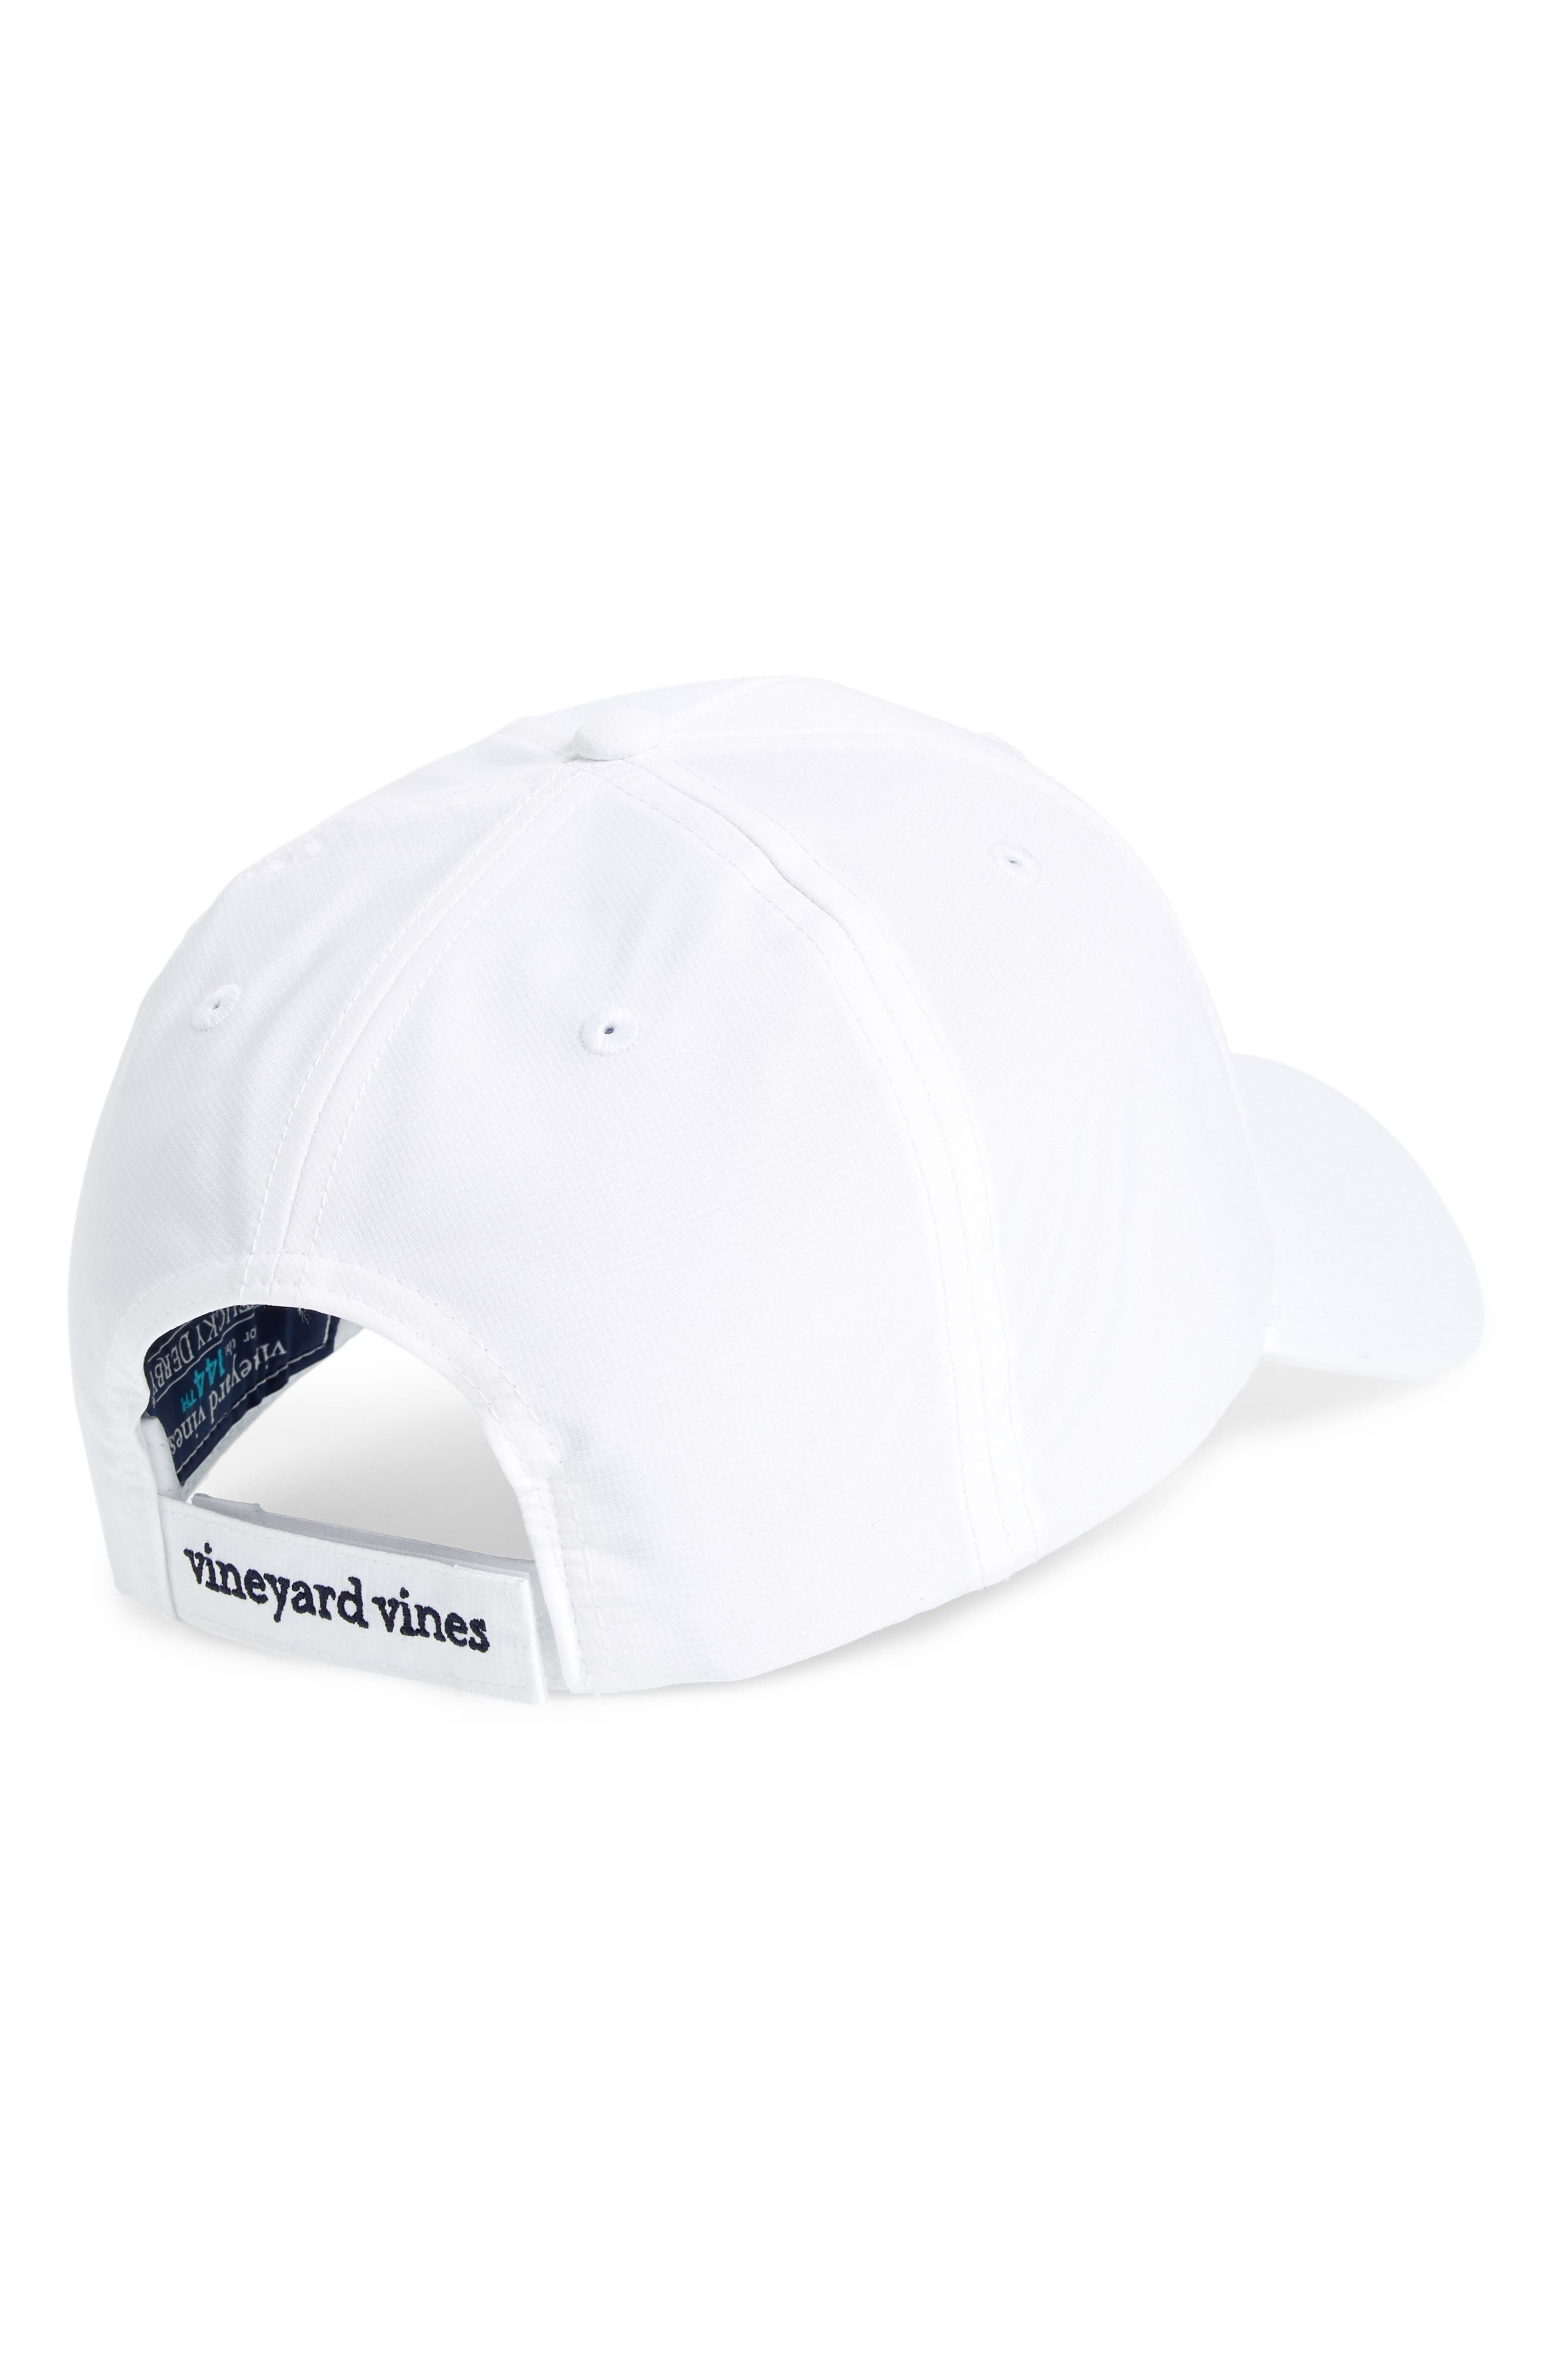 2018 Kentucky Derby<sup>®</sup> Garland of Roses Cap,                             Alternate thumbnail 2, color,                             100